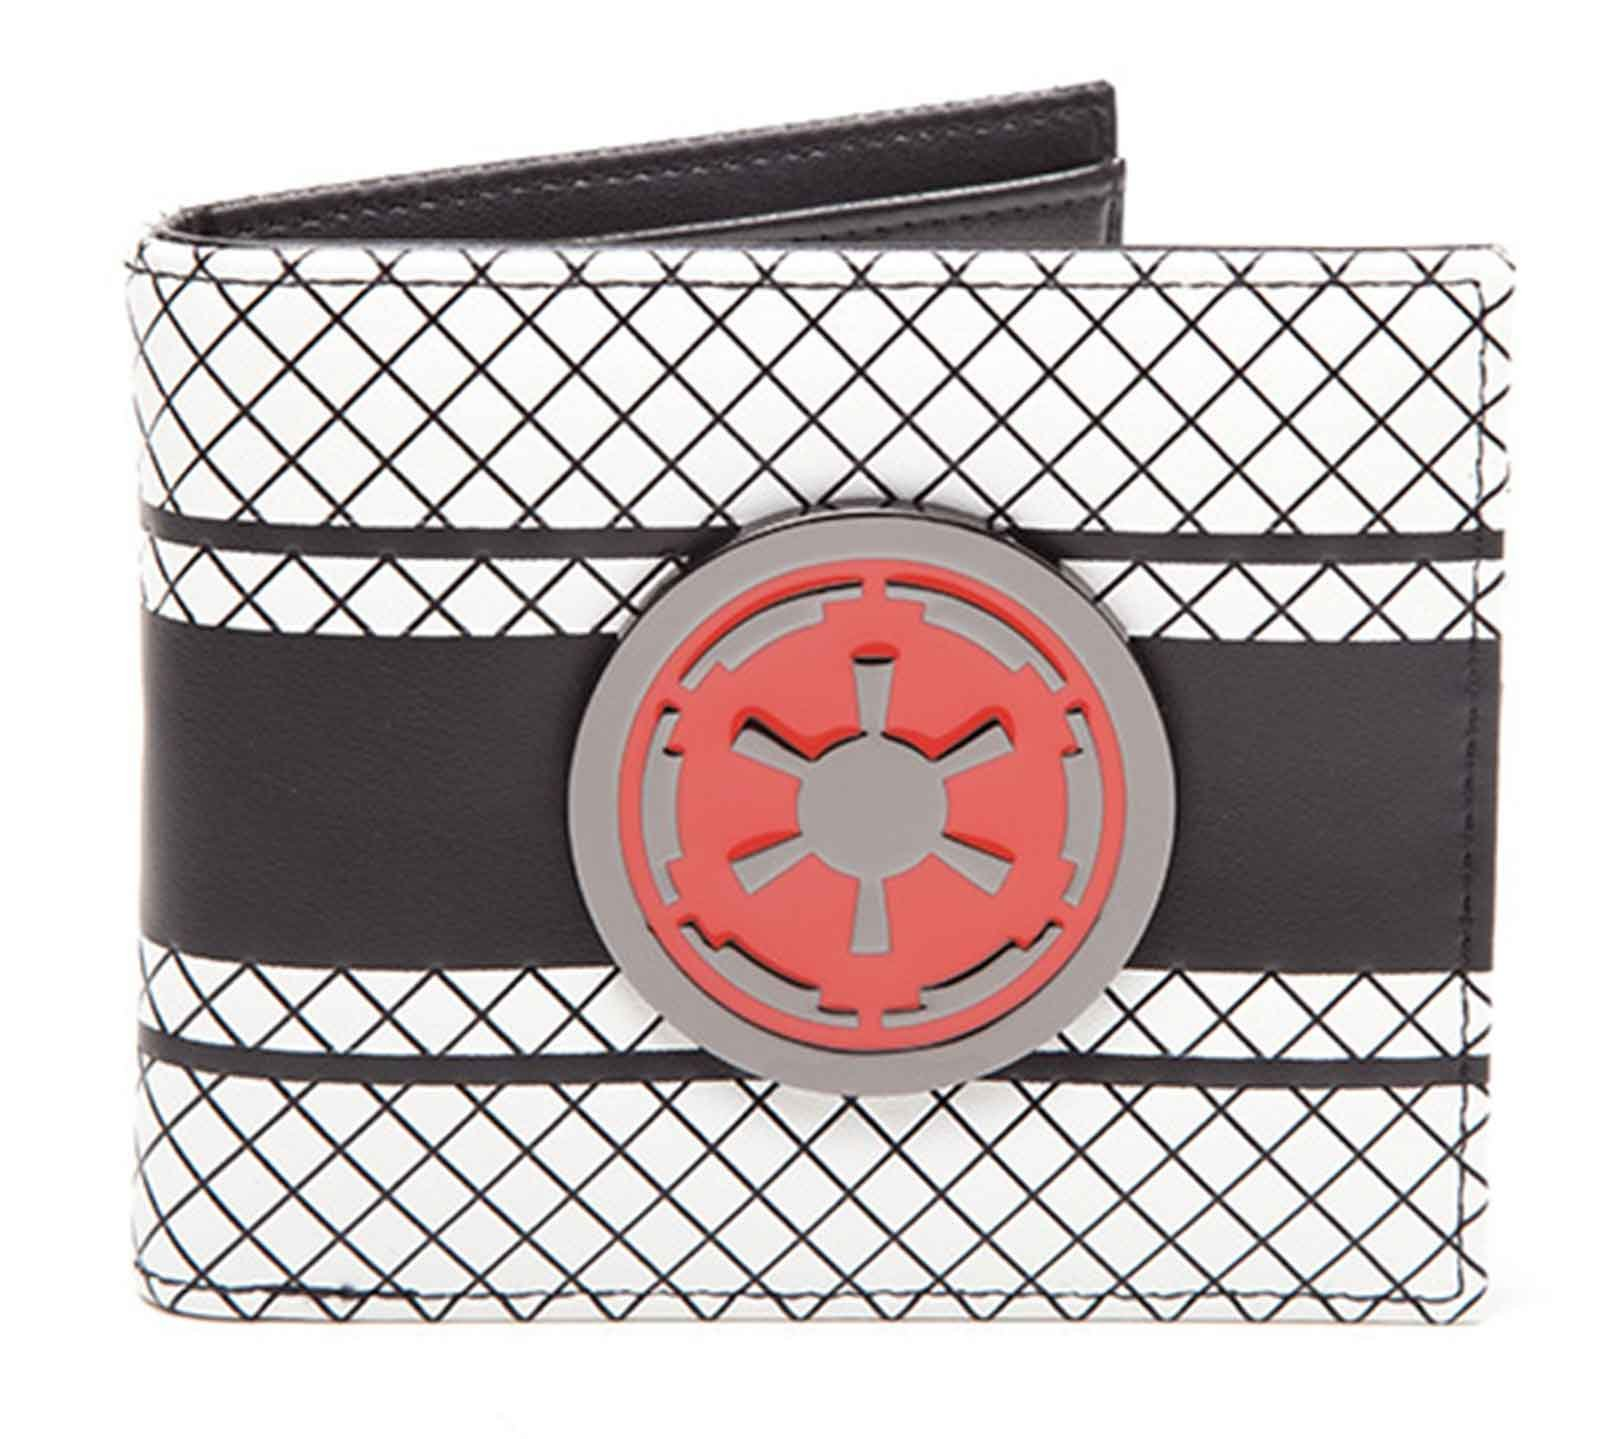 Star Wars Wallet Galactic Empire Logo Crest Official Bifold by Star Wars Merch